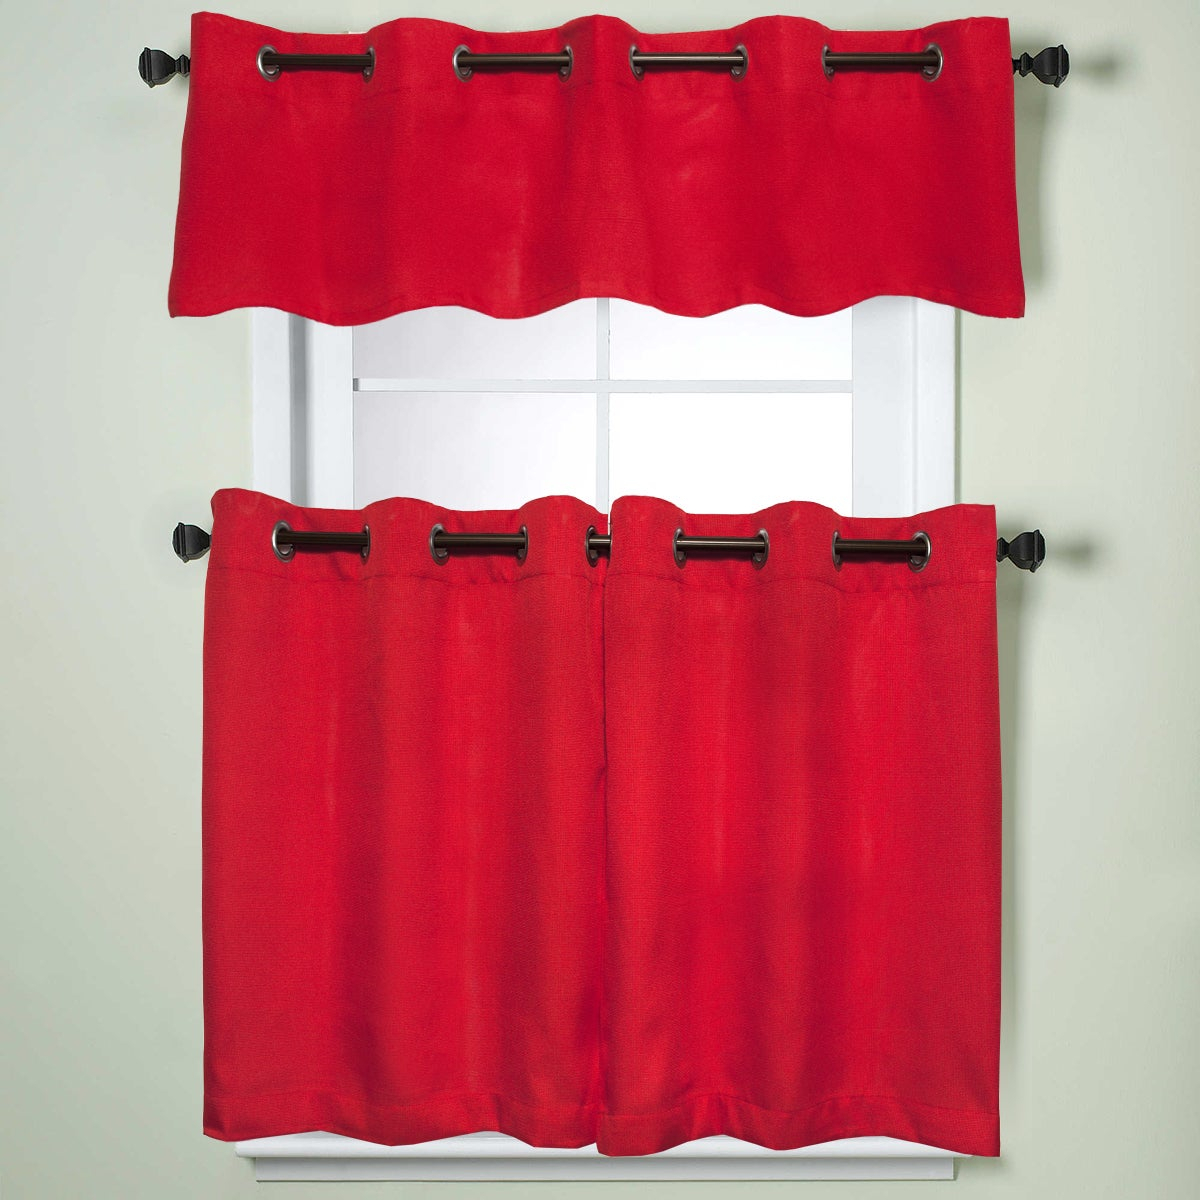 Modern Subtle Texture Solid Red Kitchen Curtain Parts With Grommets Tier And Valance Options With Modern Subtle Texture Solid White Kitchen Curtain Parts With Grommets Tier And Valance Options (View 4 of 20)